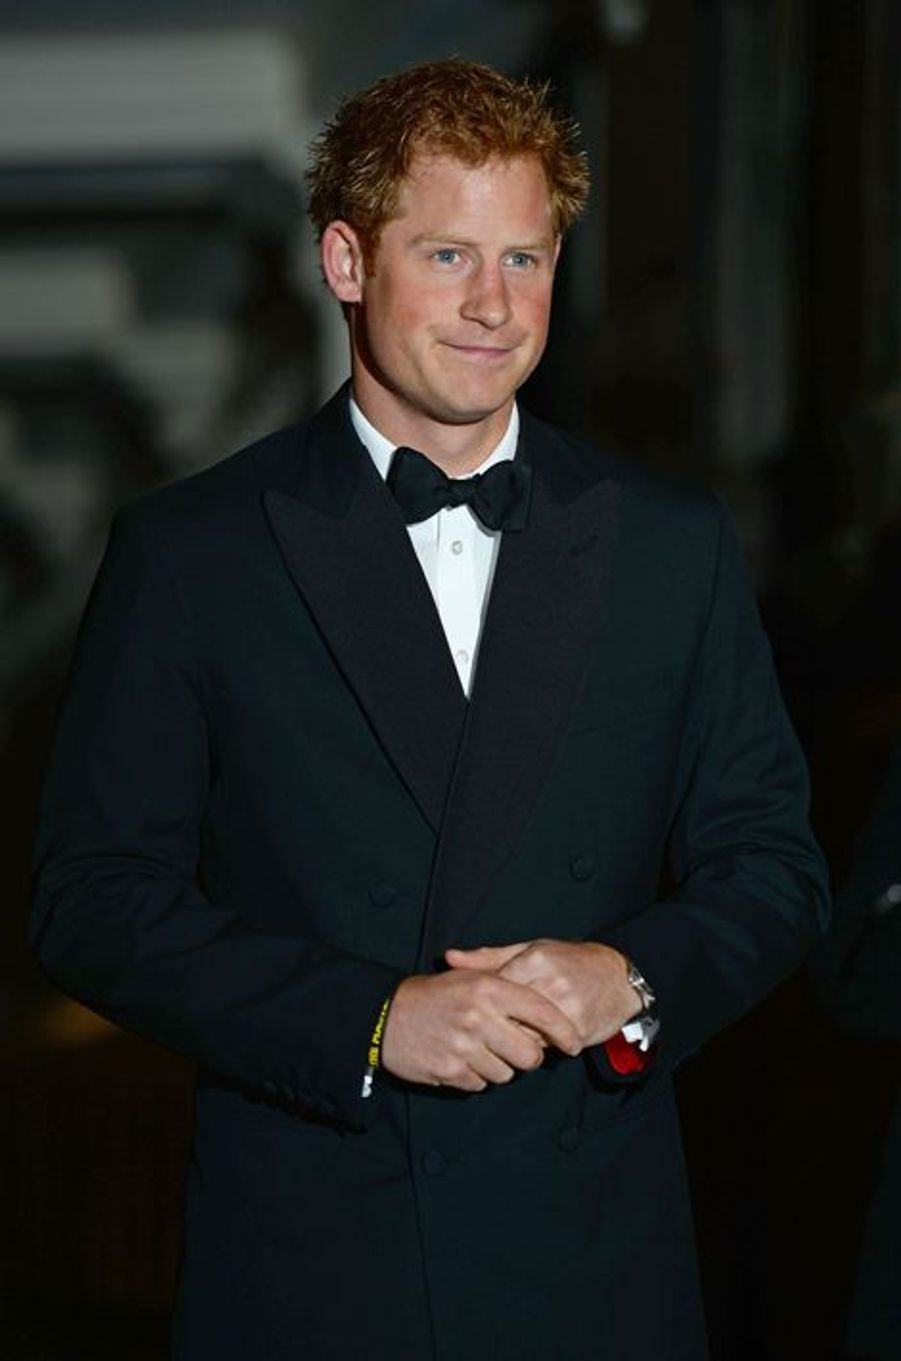 Le prince Harry d'Angleterre parraine le dîner de gala de l'association «100 Women in Hedge Funds» au Royal Hospital Chelsea à Londres, le 1...